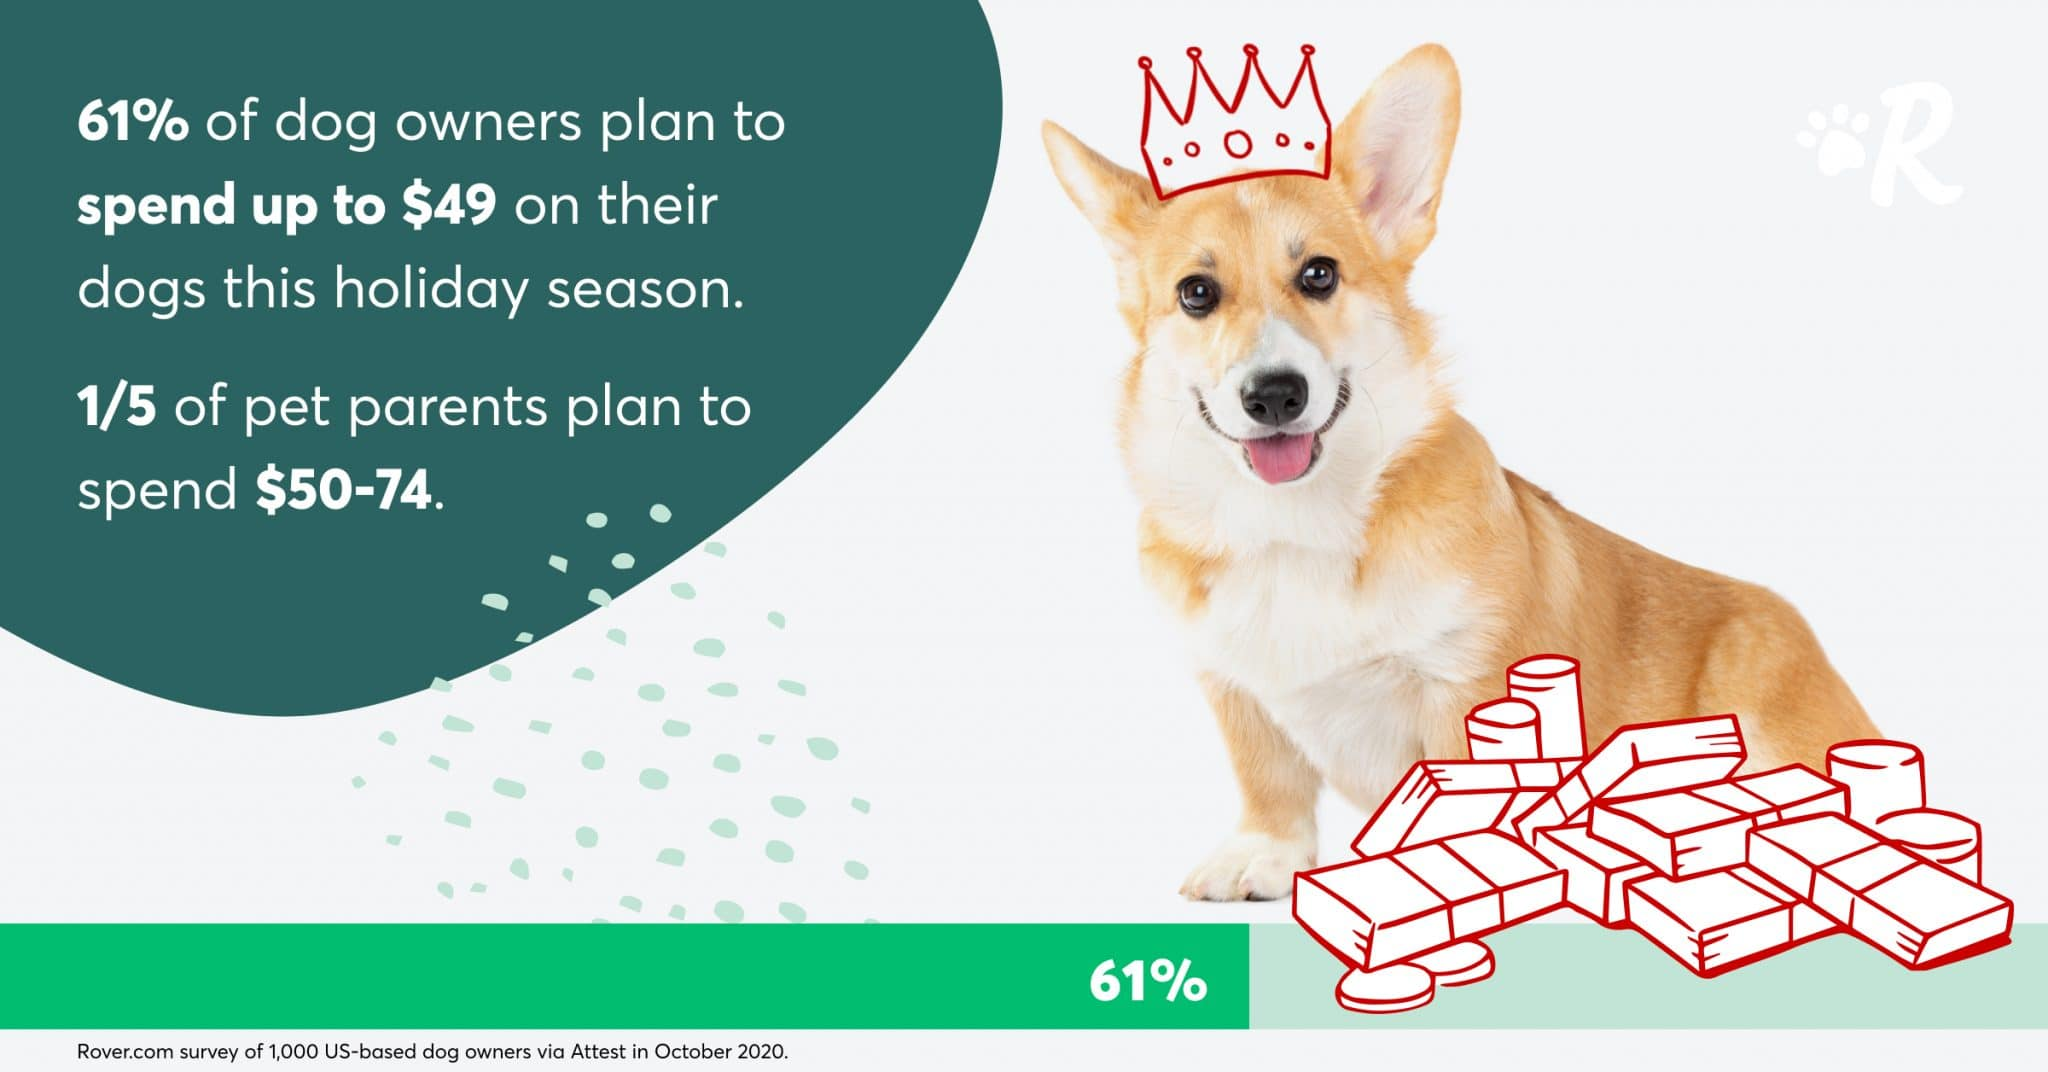 Corgi sitting in a crown with lots of money